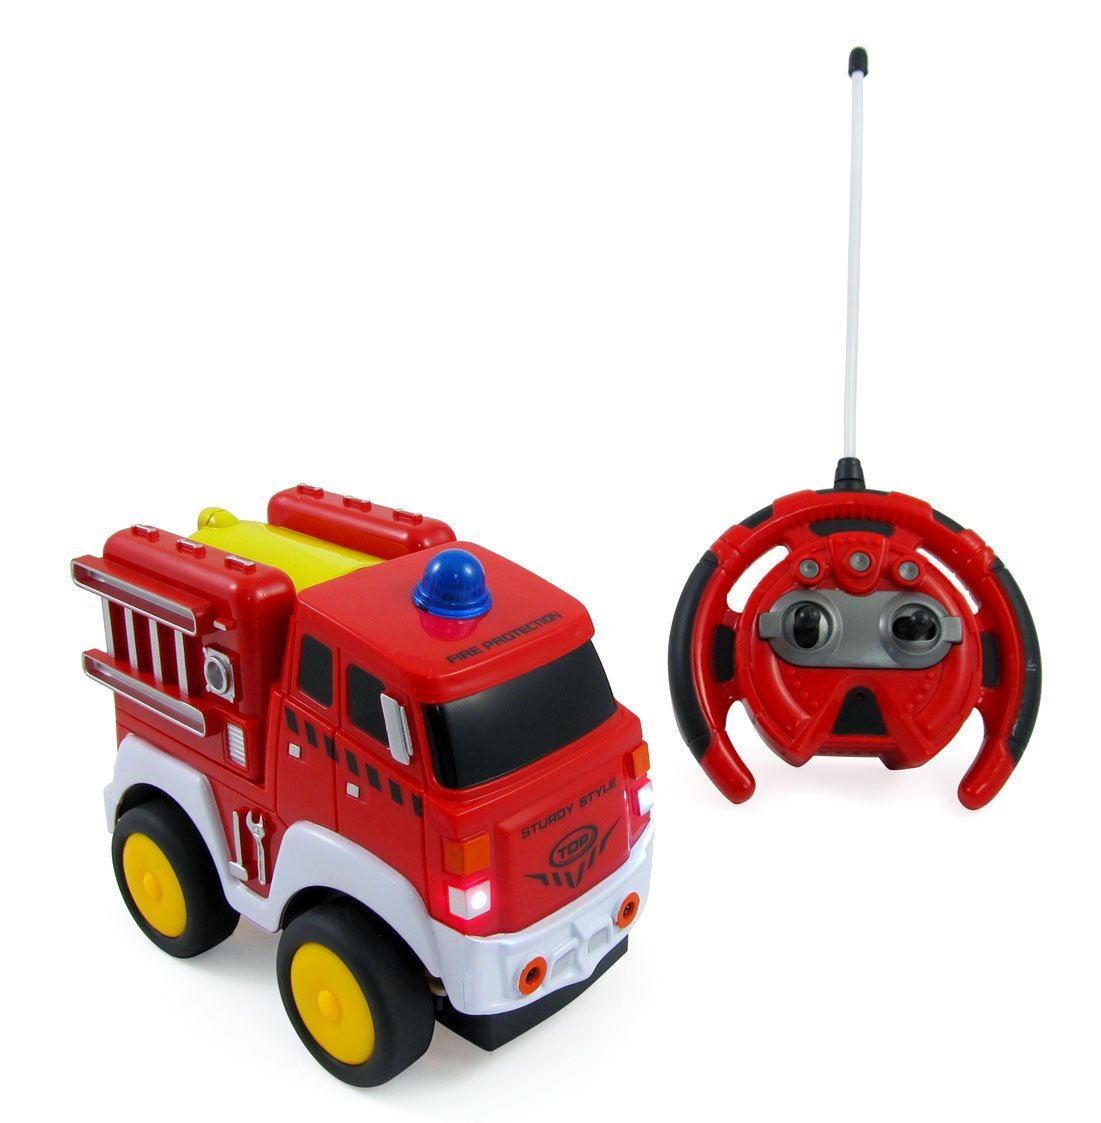 Liberty Imports My First RC Fire Engine Truck 4CH Radio Control Toy Car | Steering Wheel Remote with Lights and Sounds | Ideal for Toddlers, Children, Kids